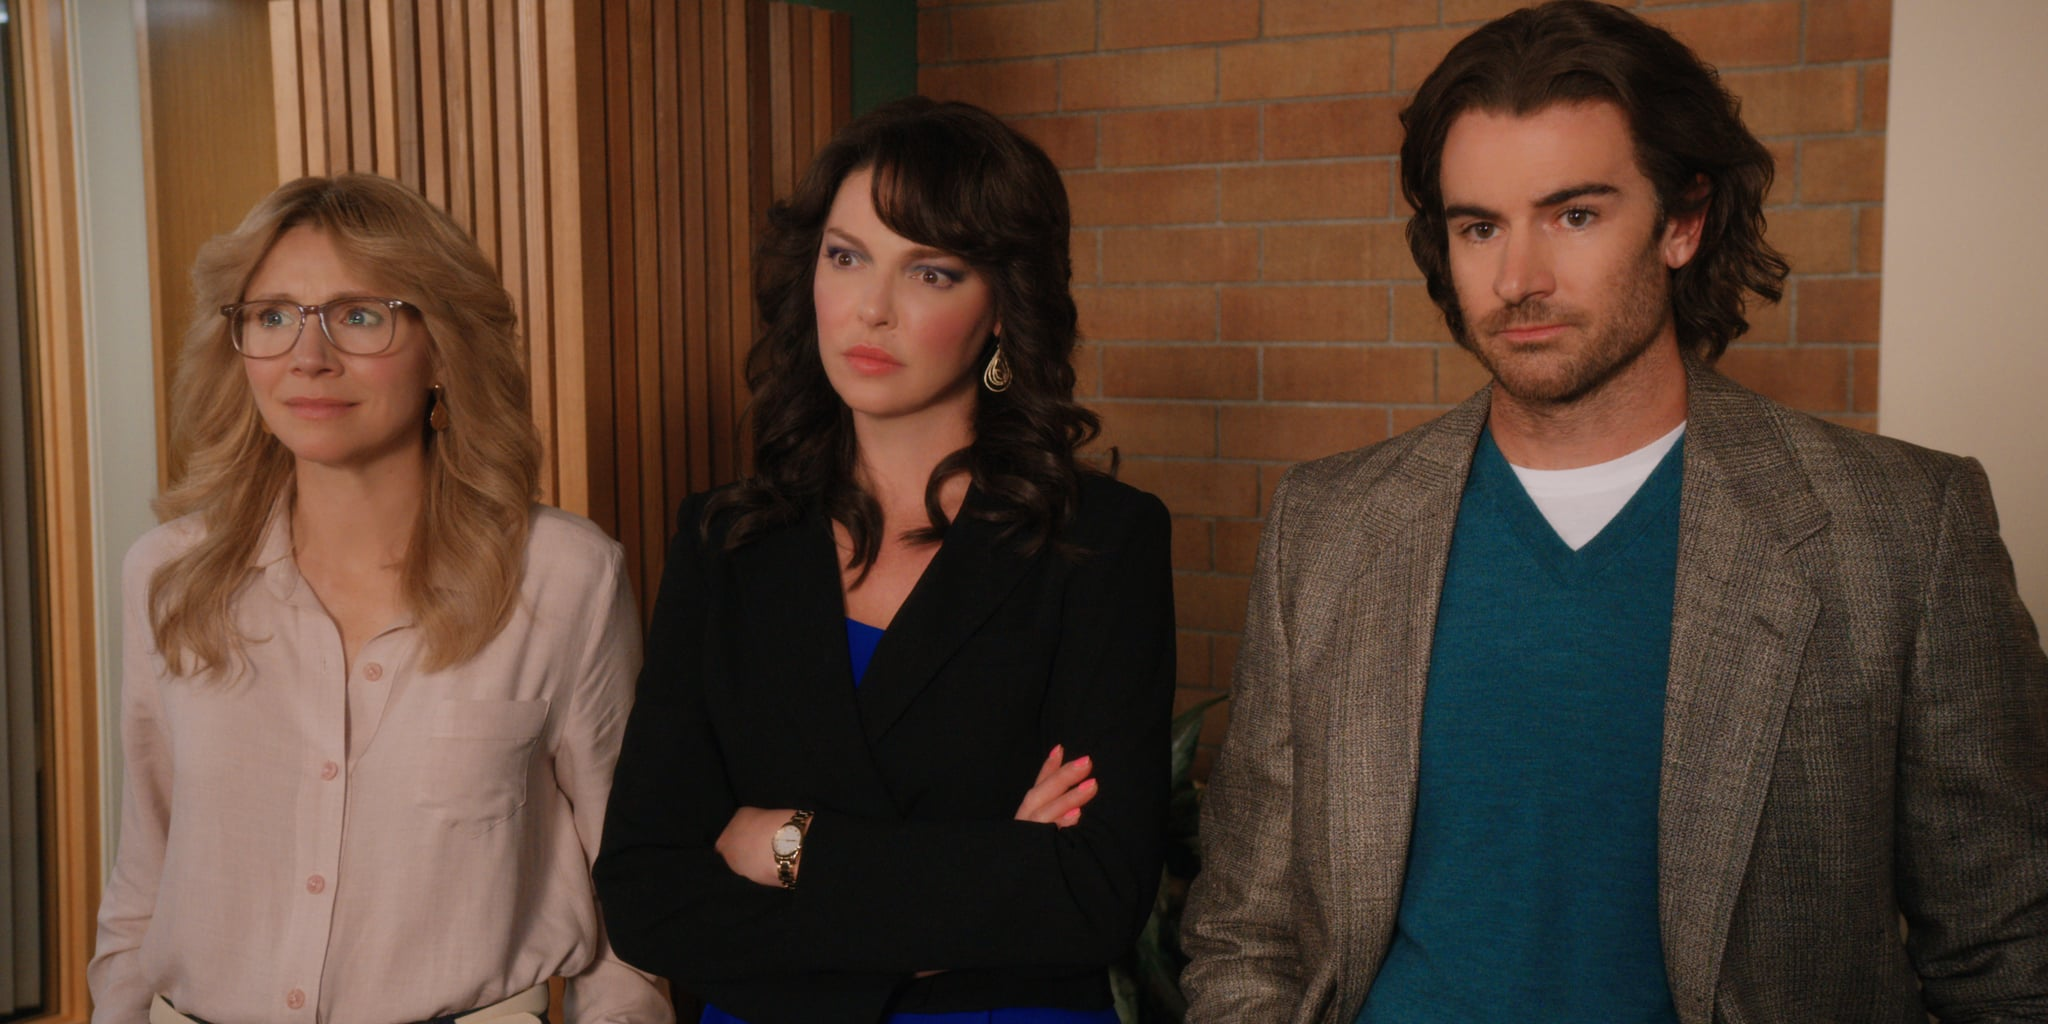 FIREFLY LANE (L to R) SARAH CHALKE as KATE, KATHERINE HEIGL as TULLY, and BEN LAWSON as RYAN in episode 102 of FIREFLY LANE. Cr. COURTESY OF NETFLIX  2020